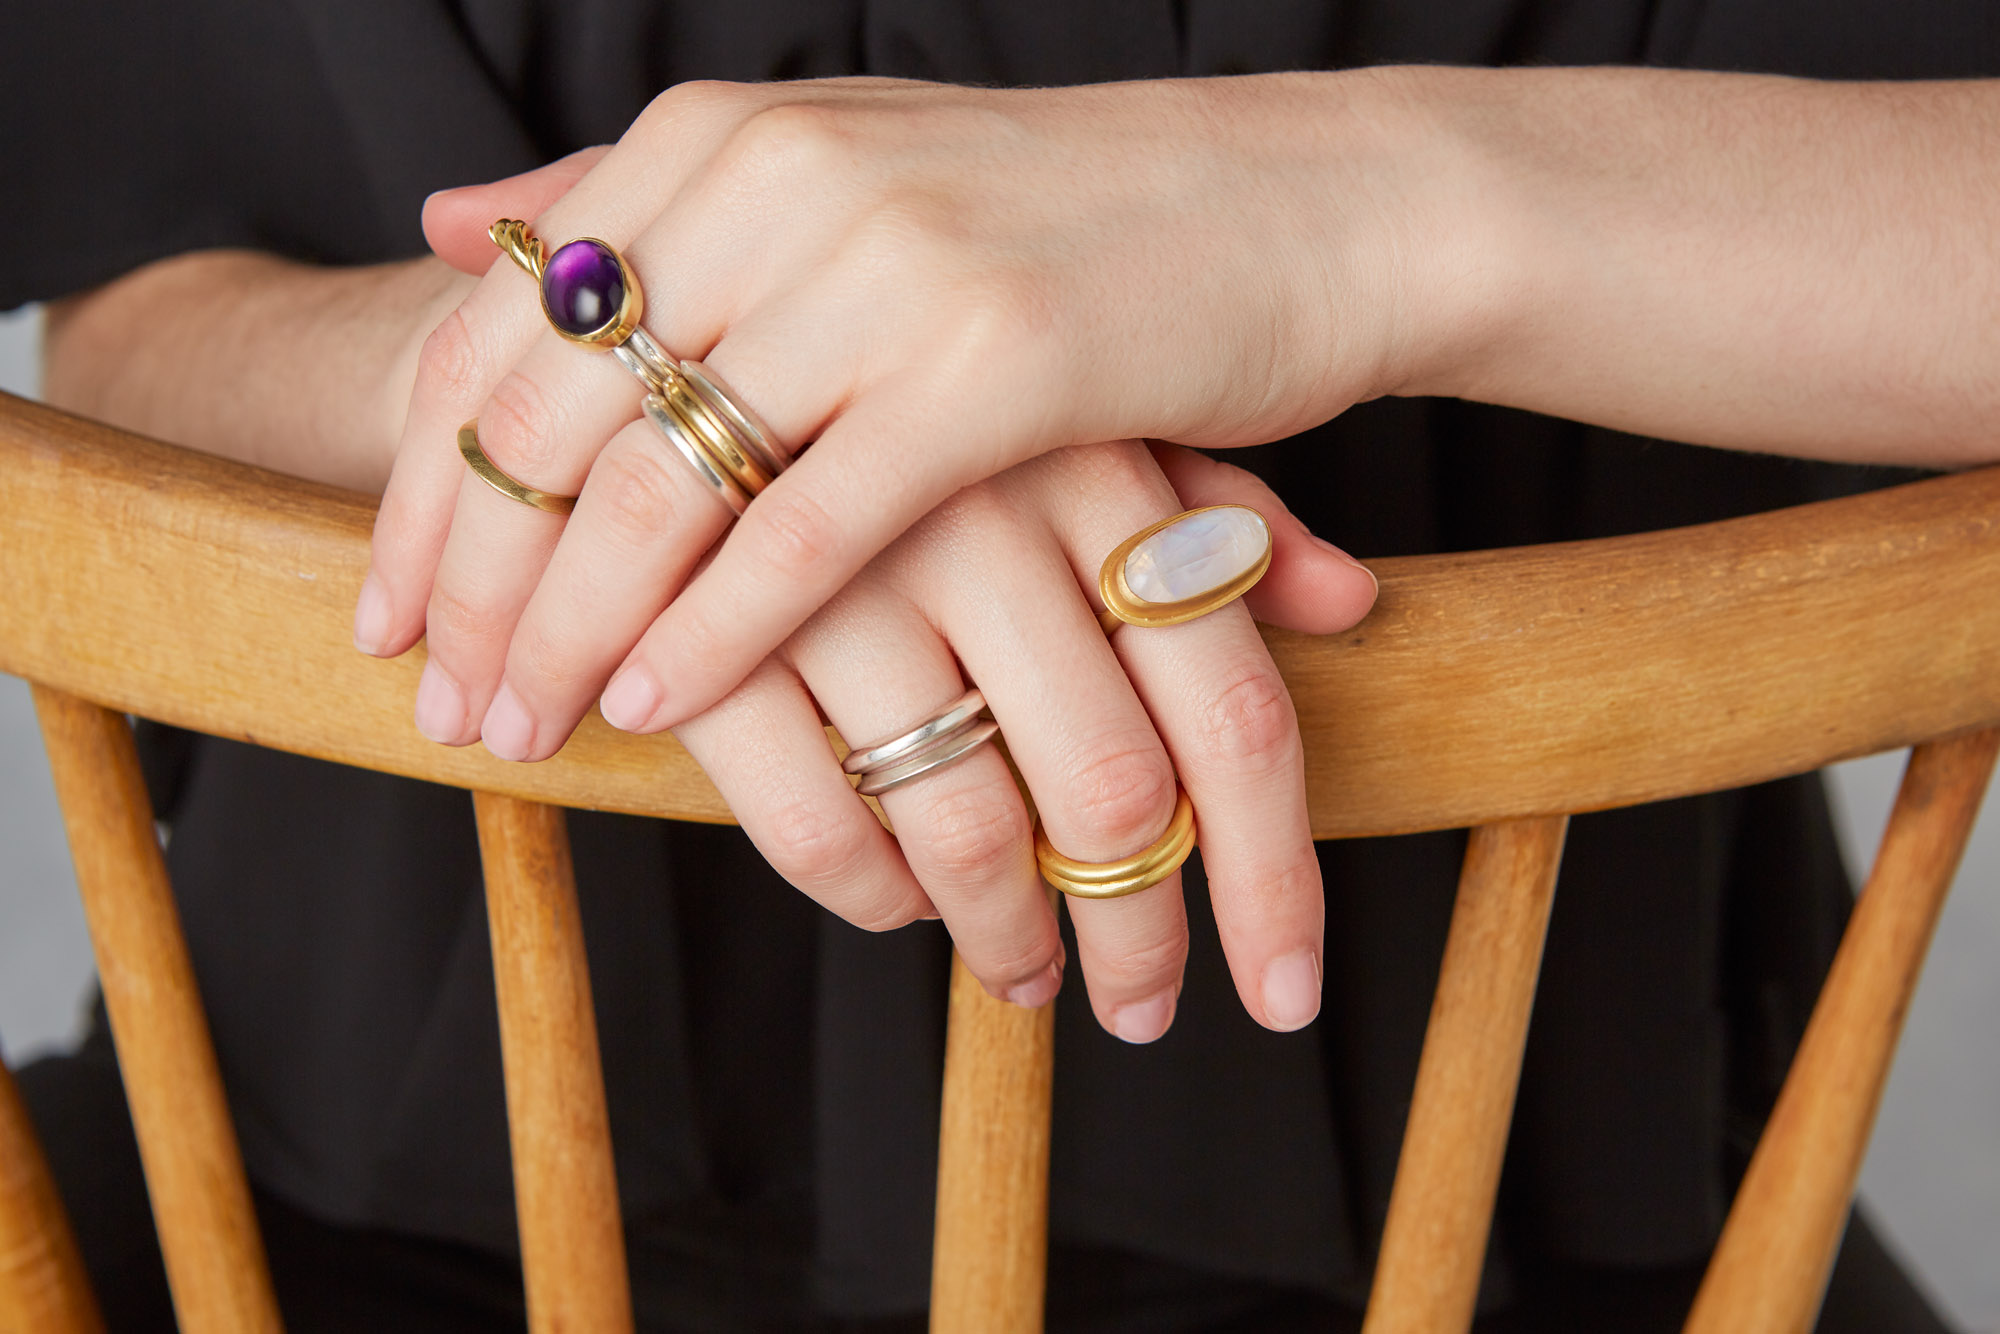 Hands on a chair, wearing rings